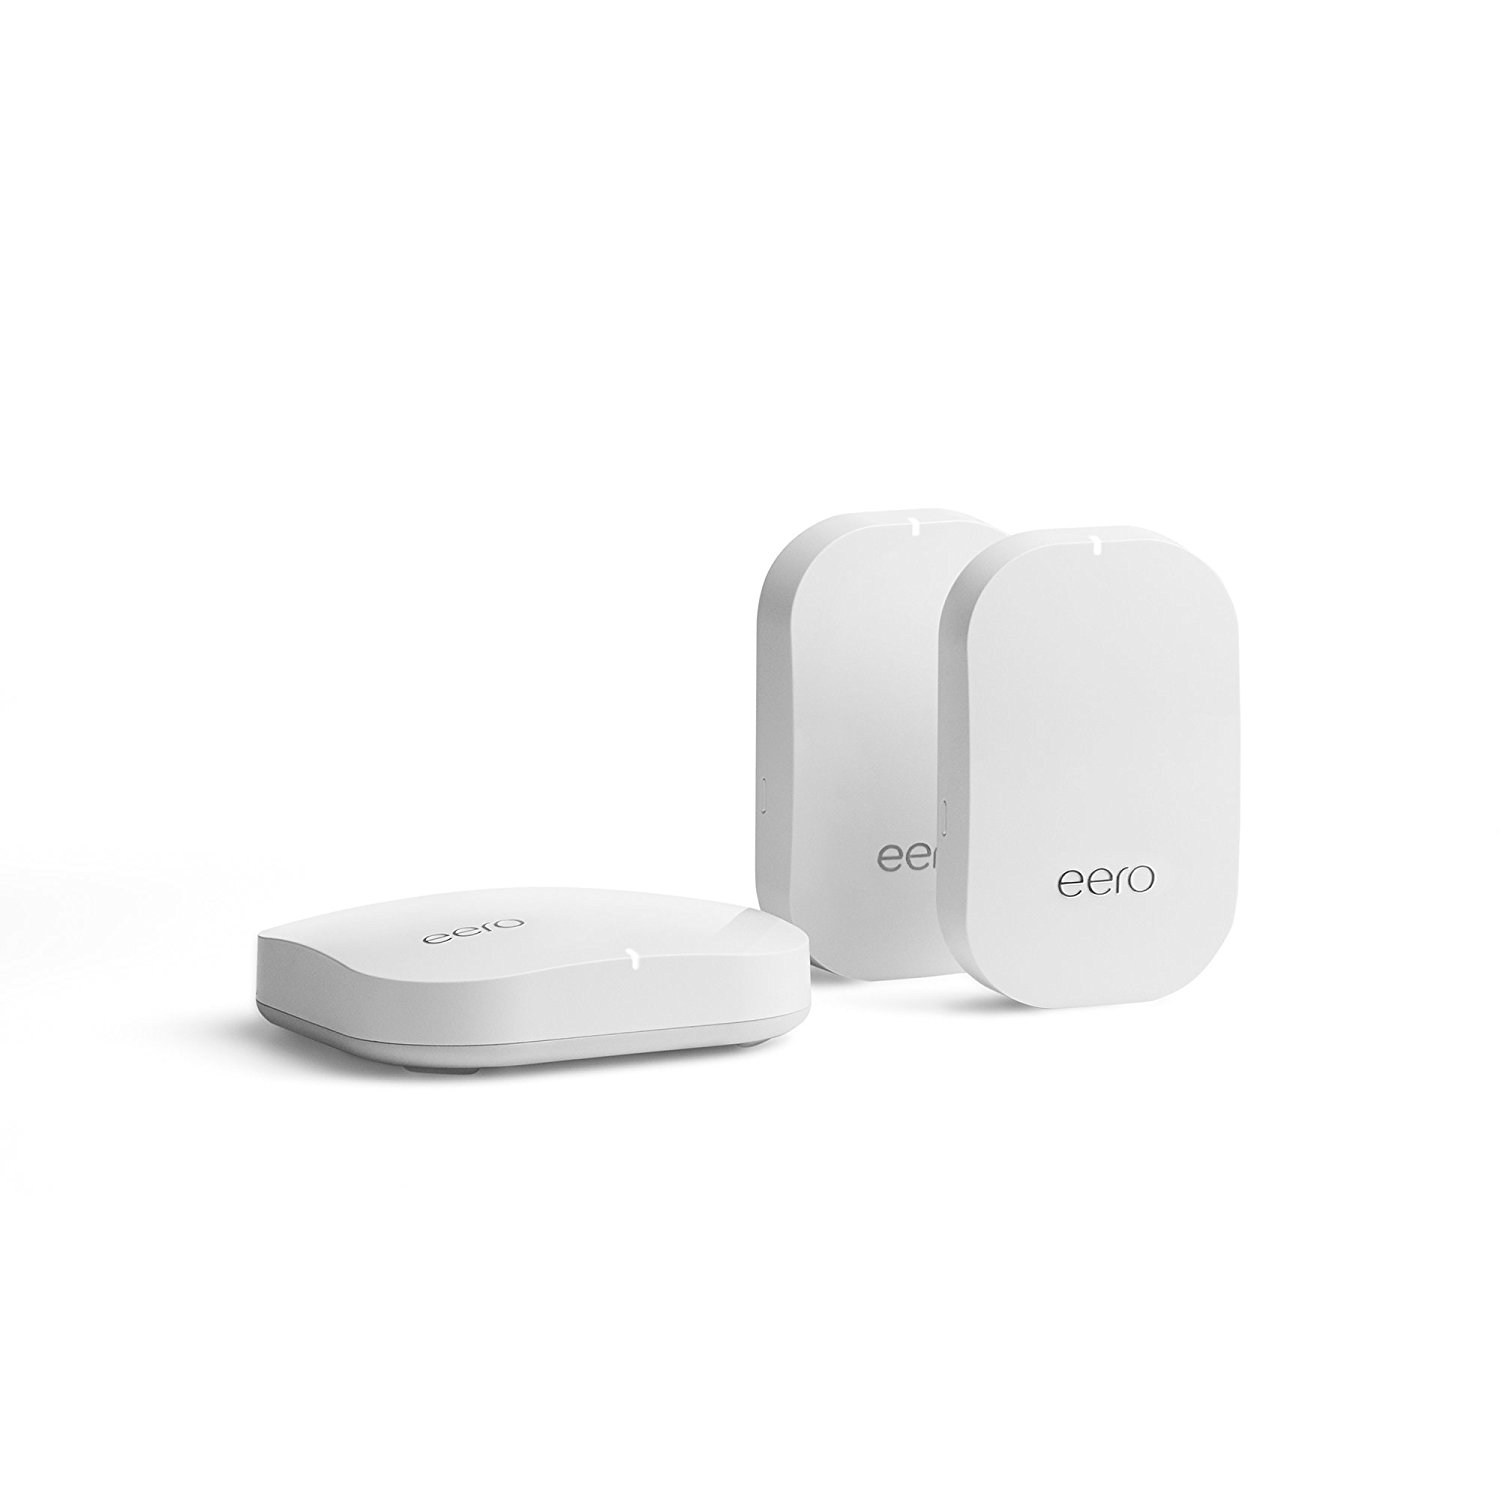 Eero Mesh Wifi System The Best Wifi System for Smart Home Devices & the Ring Pro Doorbell